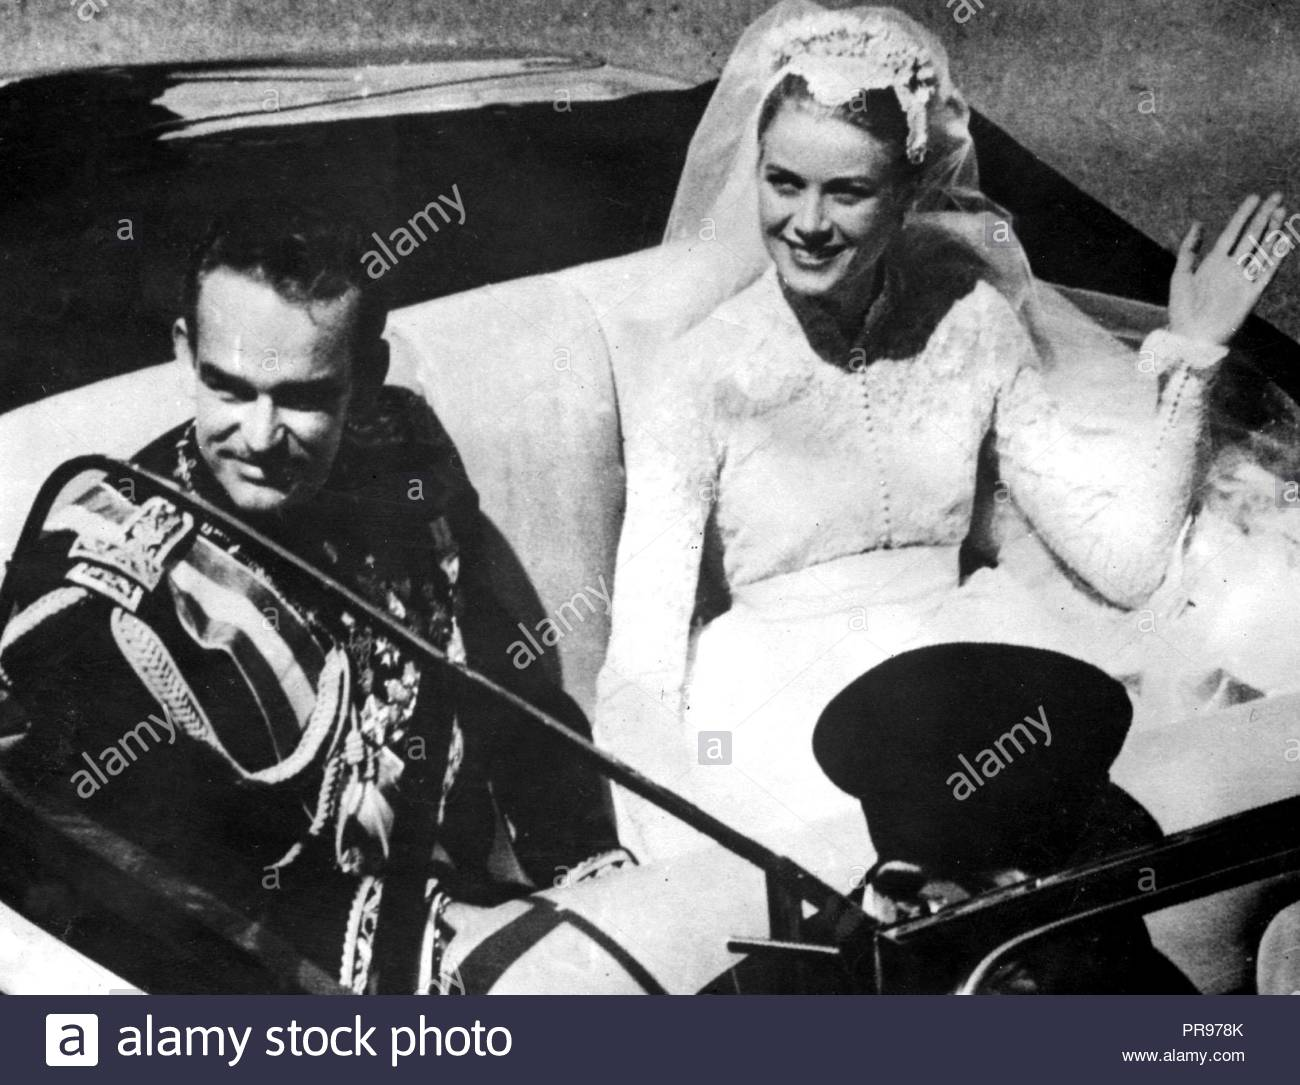 File photo dated 19/04/1956 of Grace Kelly and Prince Rainier of Monaco on their wedding day. A bridal expert has suggested that Princess Eugenie should opt for an elegant and simple wedding dress to create a memorable royal look, rather than going for over-the-top drama. - Stock Image